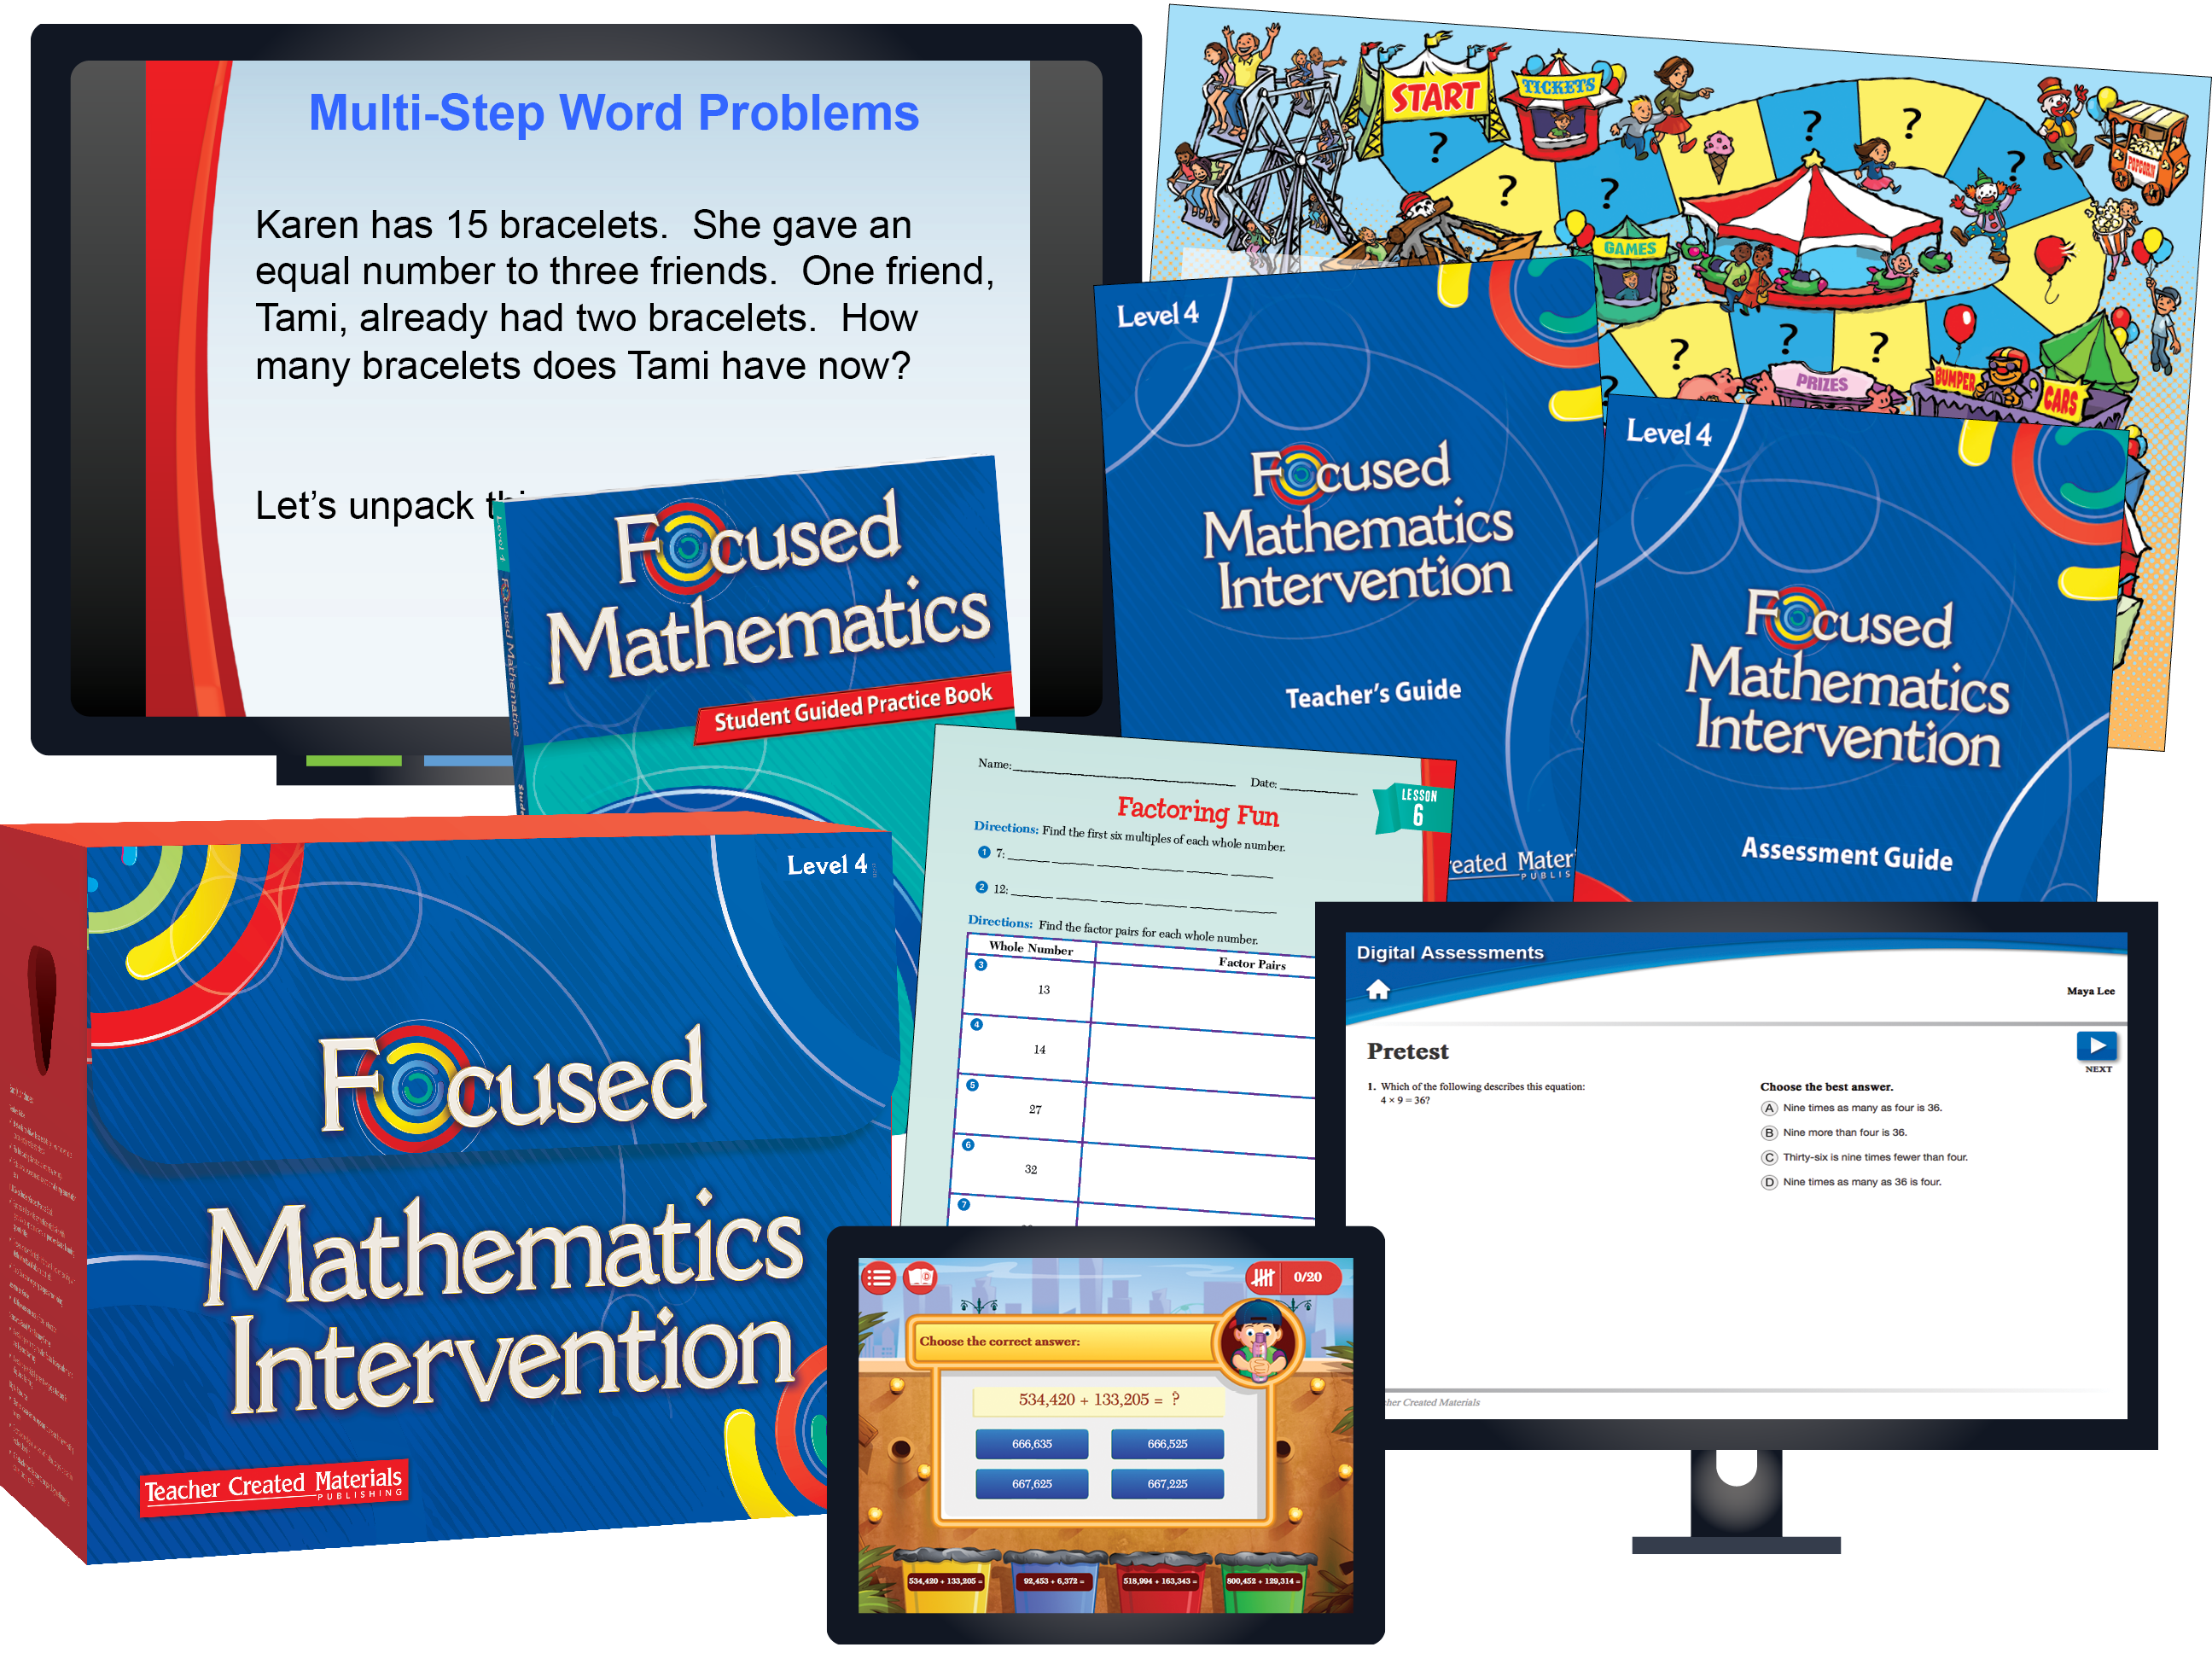 Focused Mathematics Intervention: Level 4 Kit